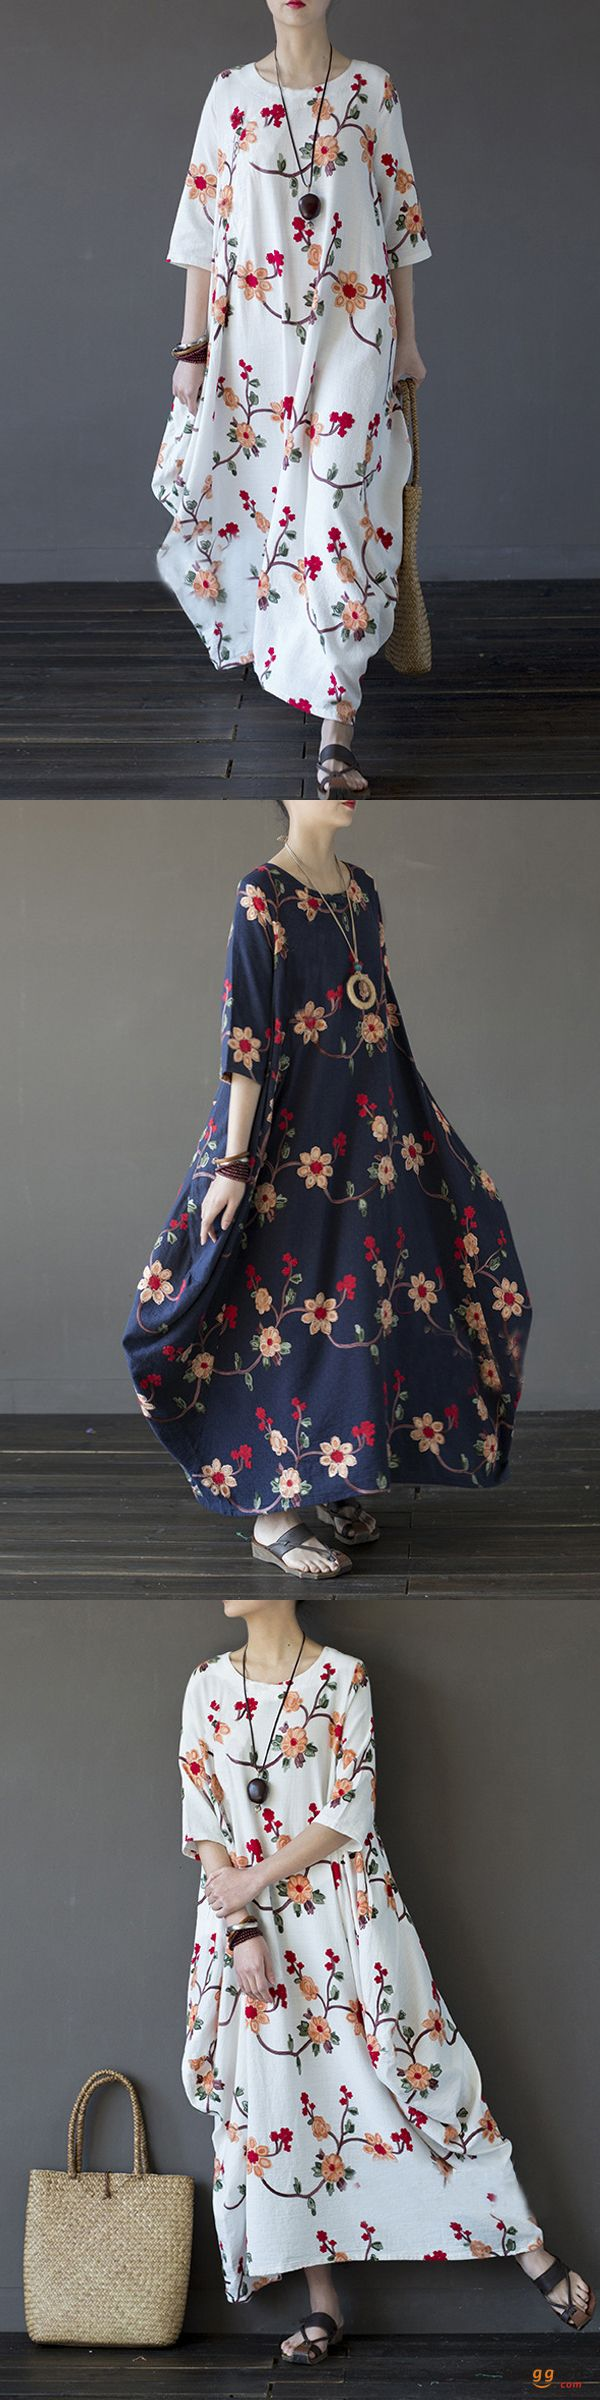 US$35.89+Free shipping. Size: S~5XL. Color: Navy, White. Home or out, love this vintage and casual dress. Women Dresses, Long Dresses, Dresses Casual, Dresses for Teens, Summer Dresses, Summer Outfits, Retro Fashion.